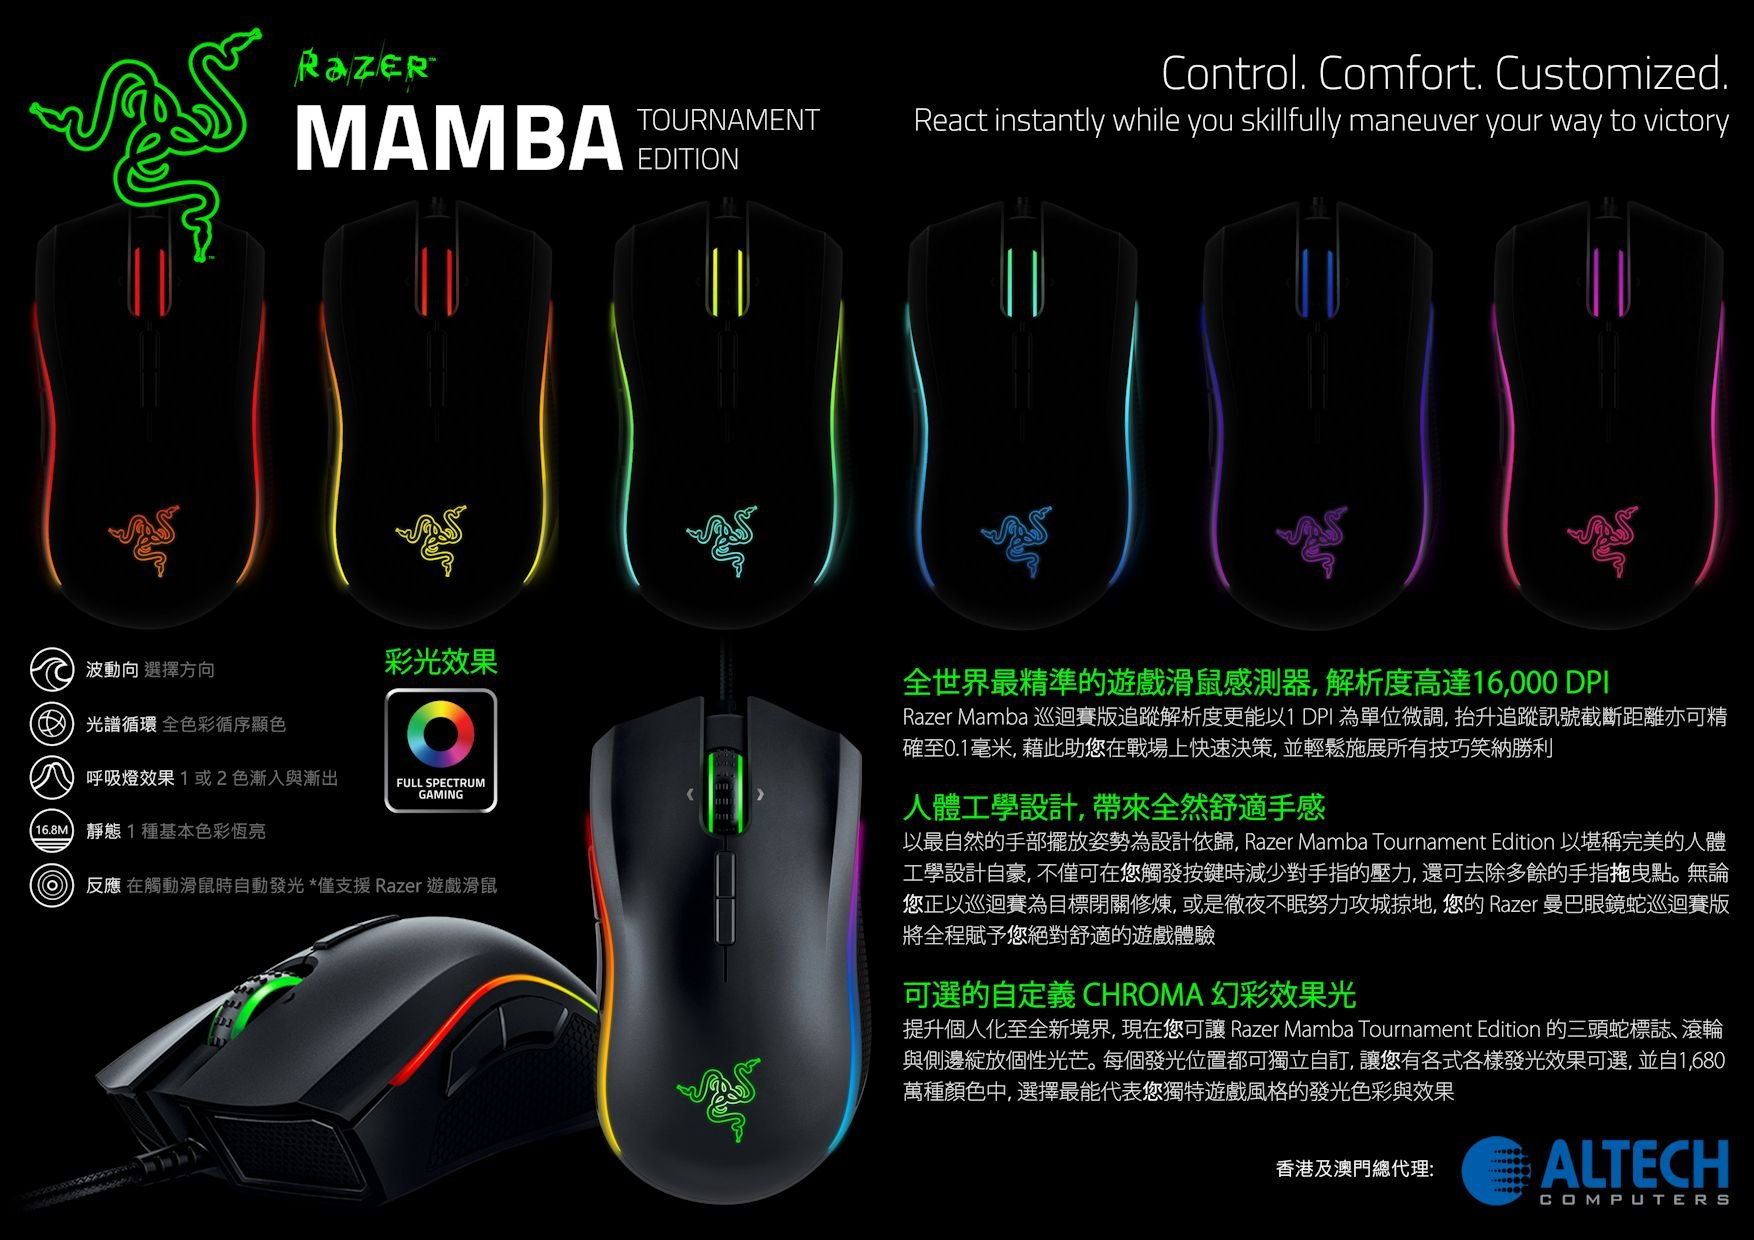 Mamba Tournament Edition